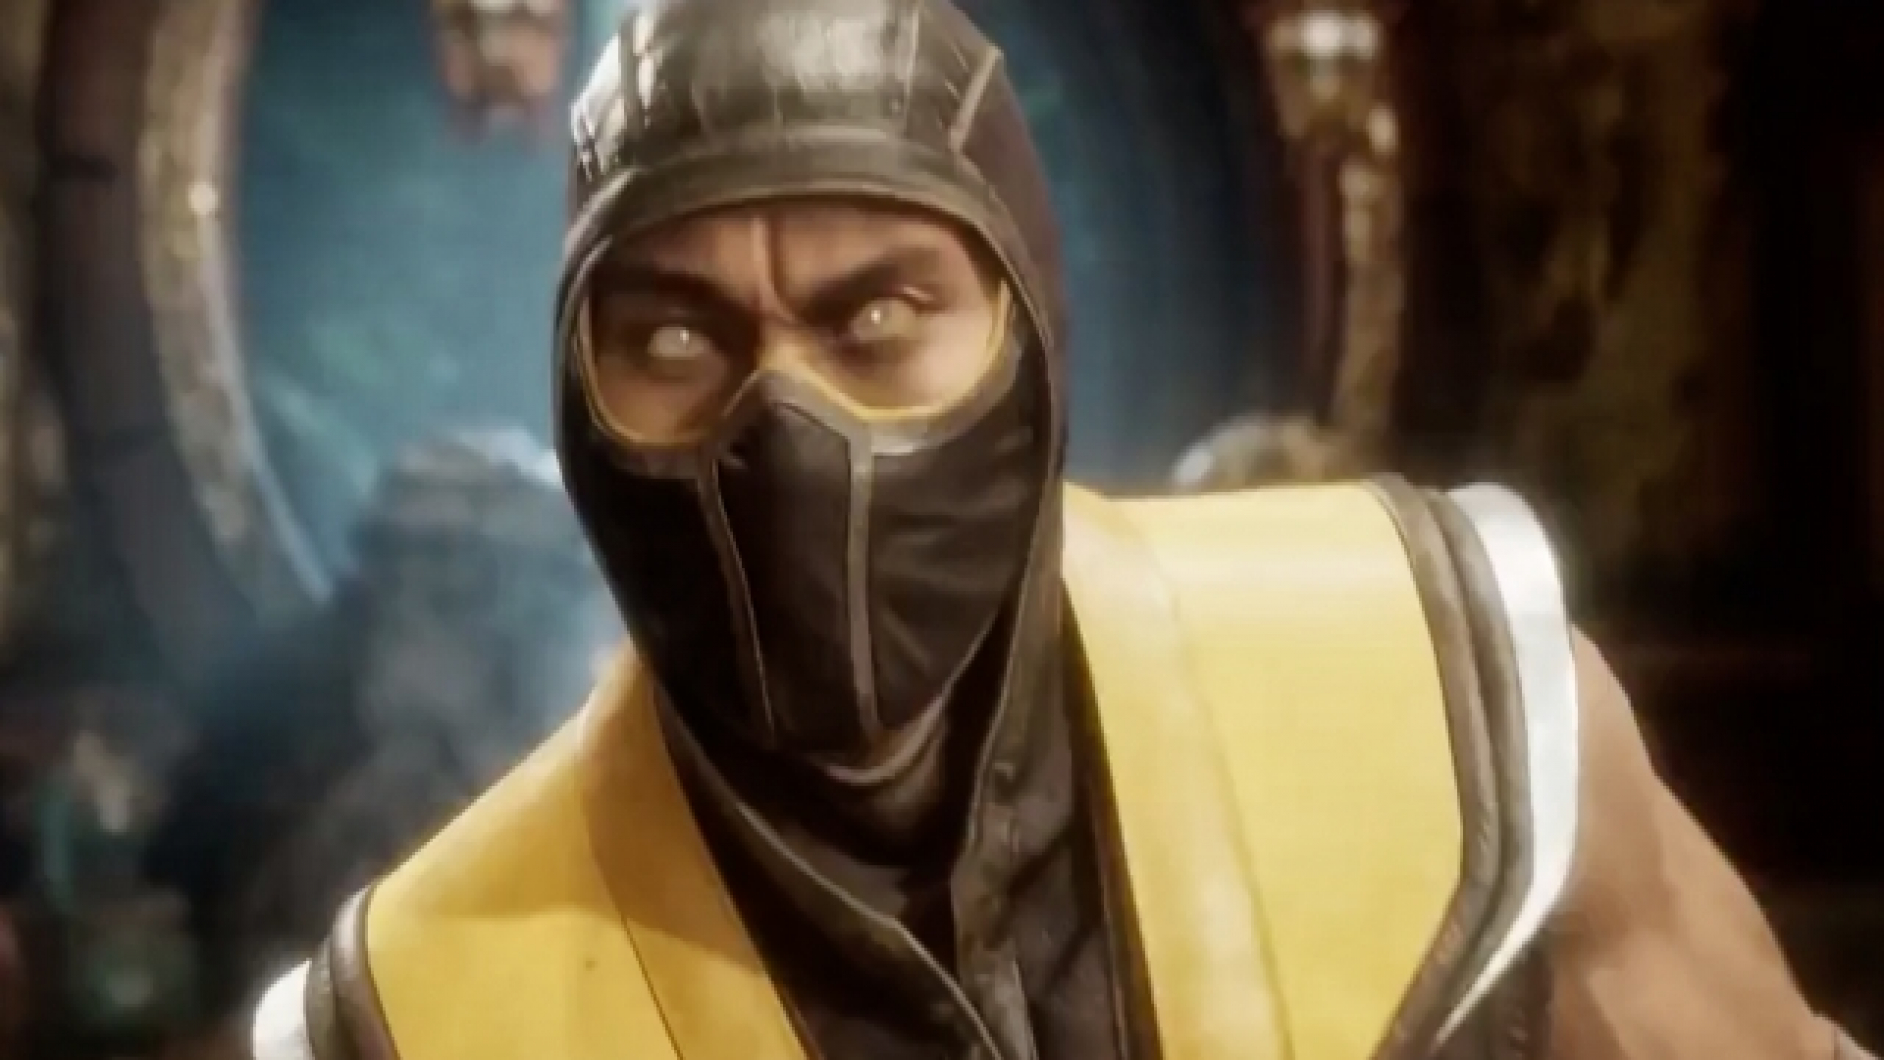 Scorpion Gives Mortal Kombat Fans Advice Over Coronavirus